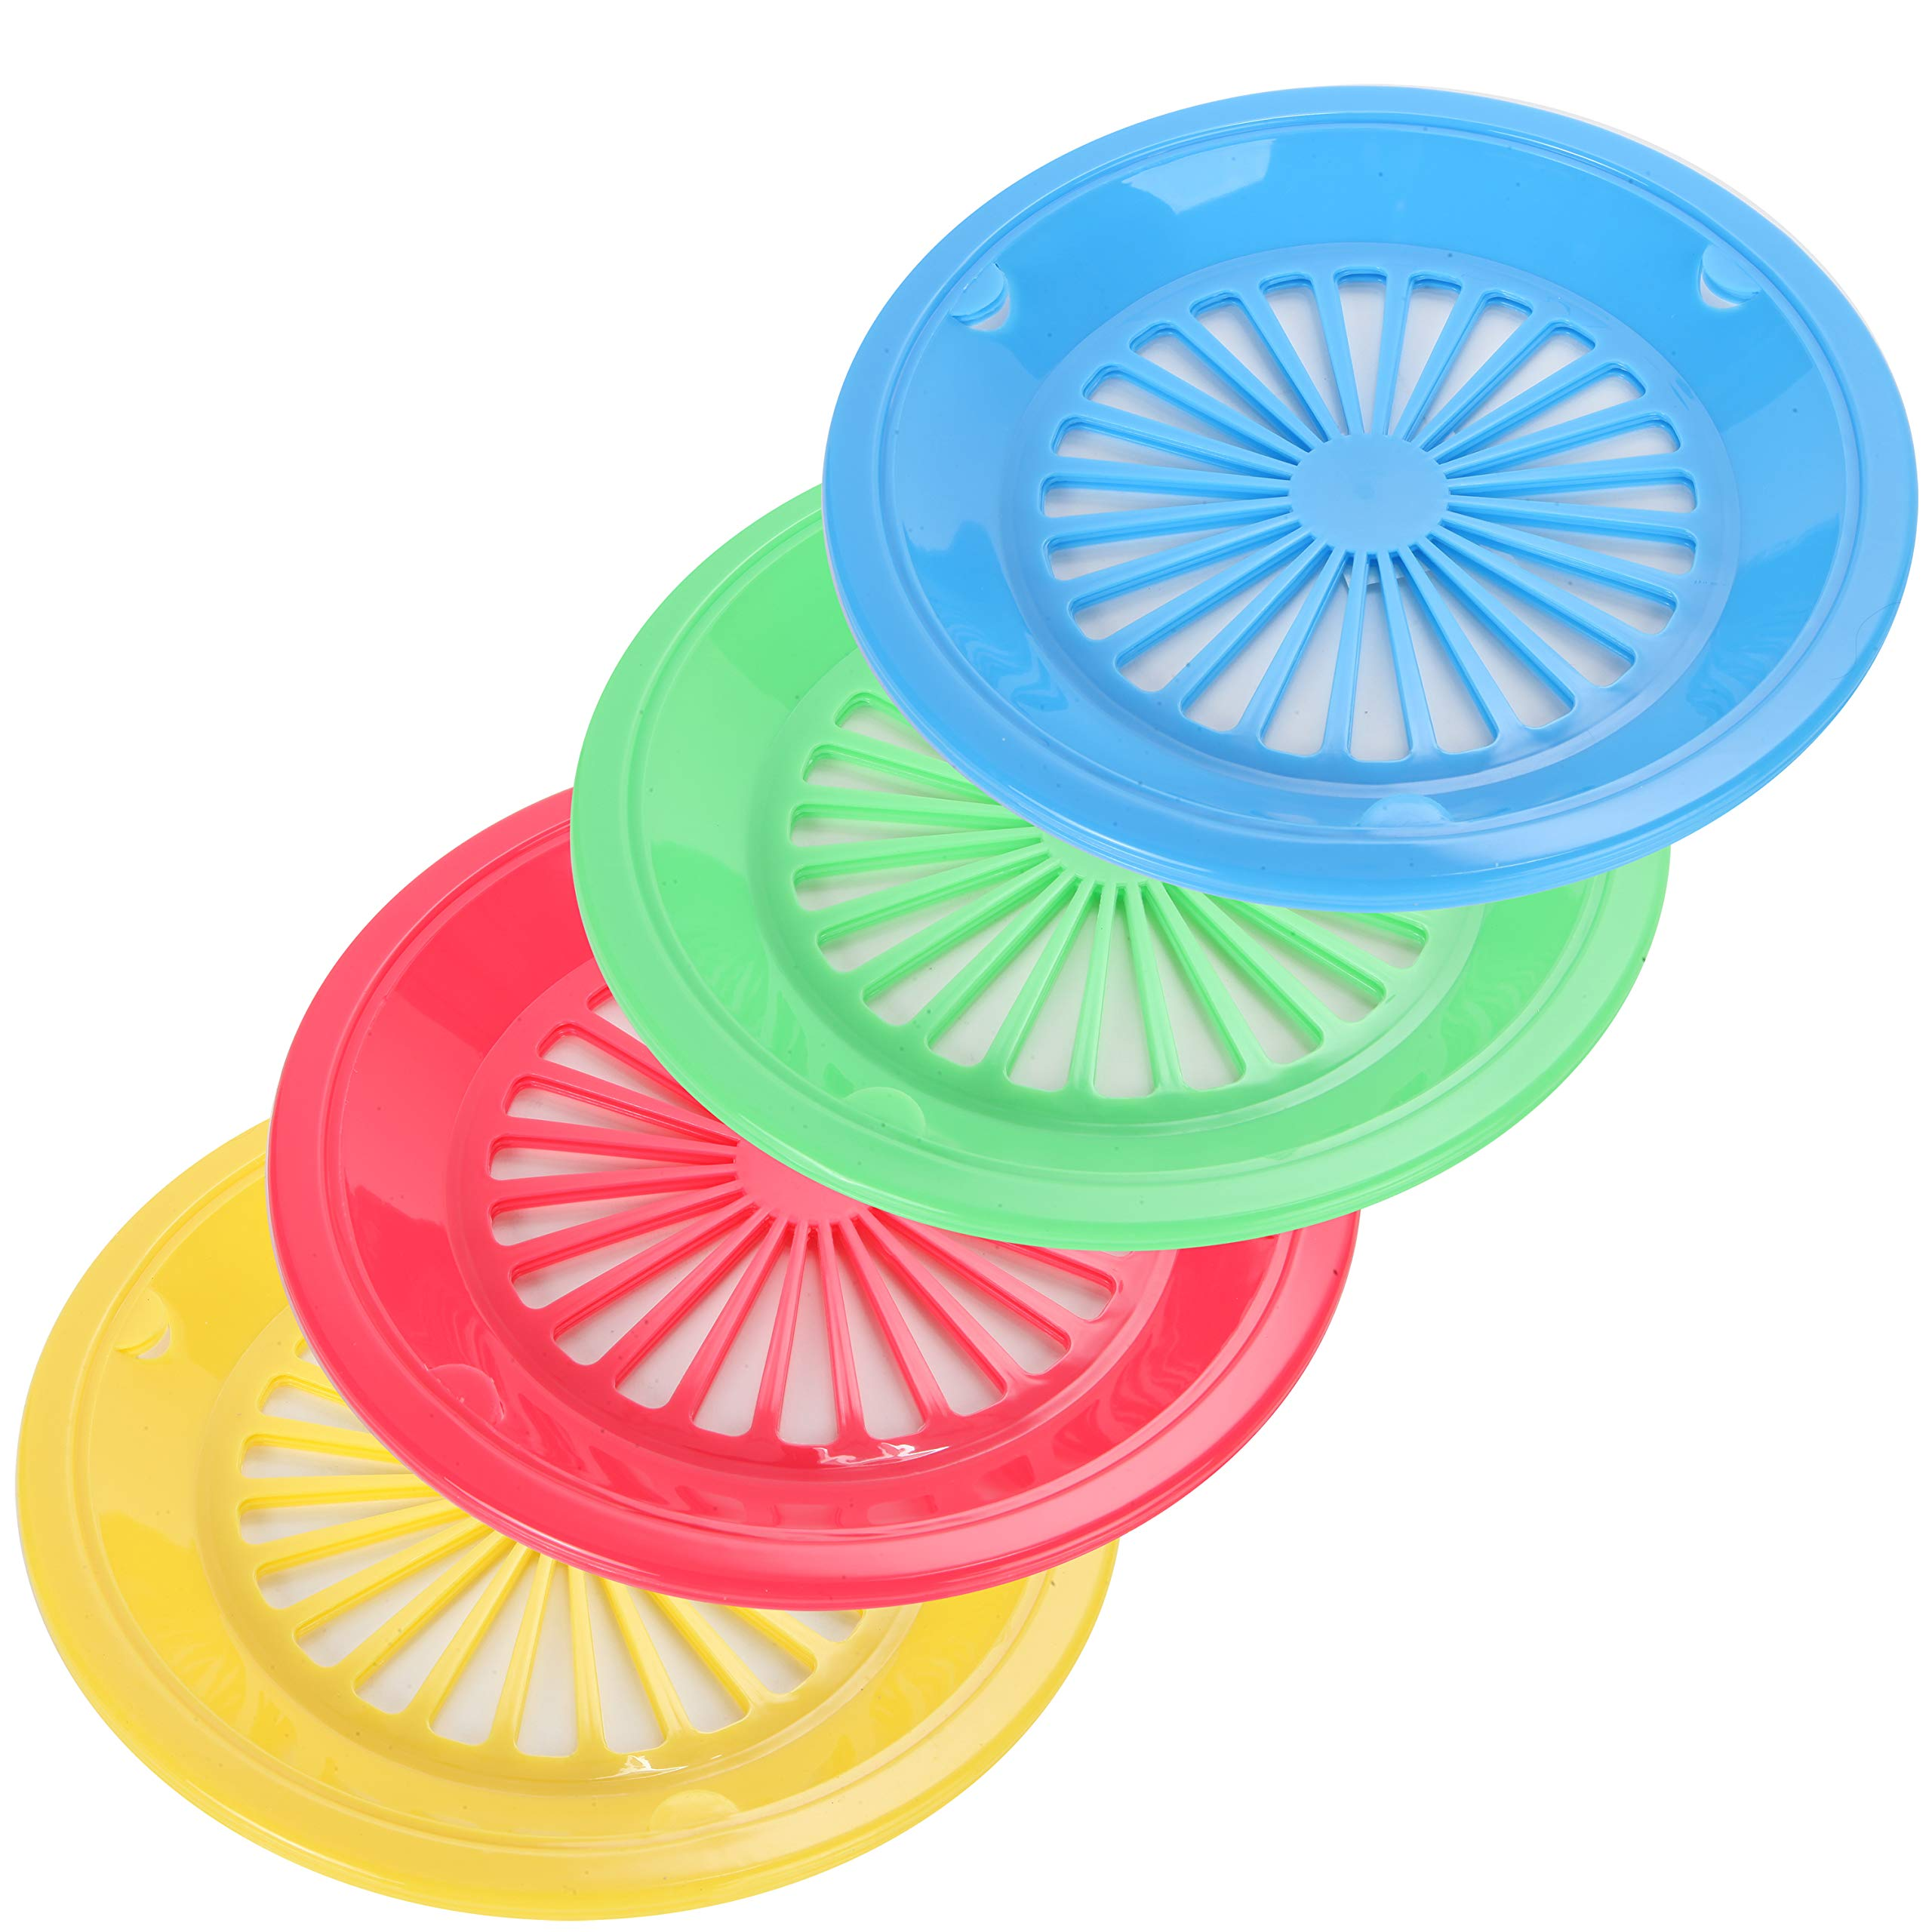 Trenton GIfts Reusable Paper Plate Holder   Durable Plastic   4 Assorted Colors   10''   Set of 12 by Trenton Gifts